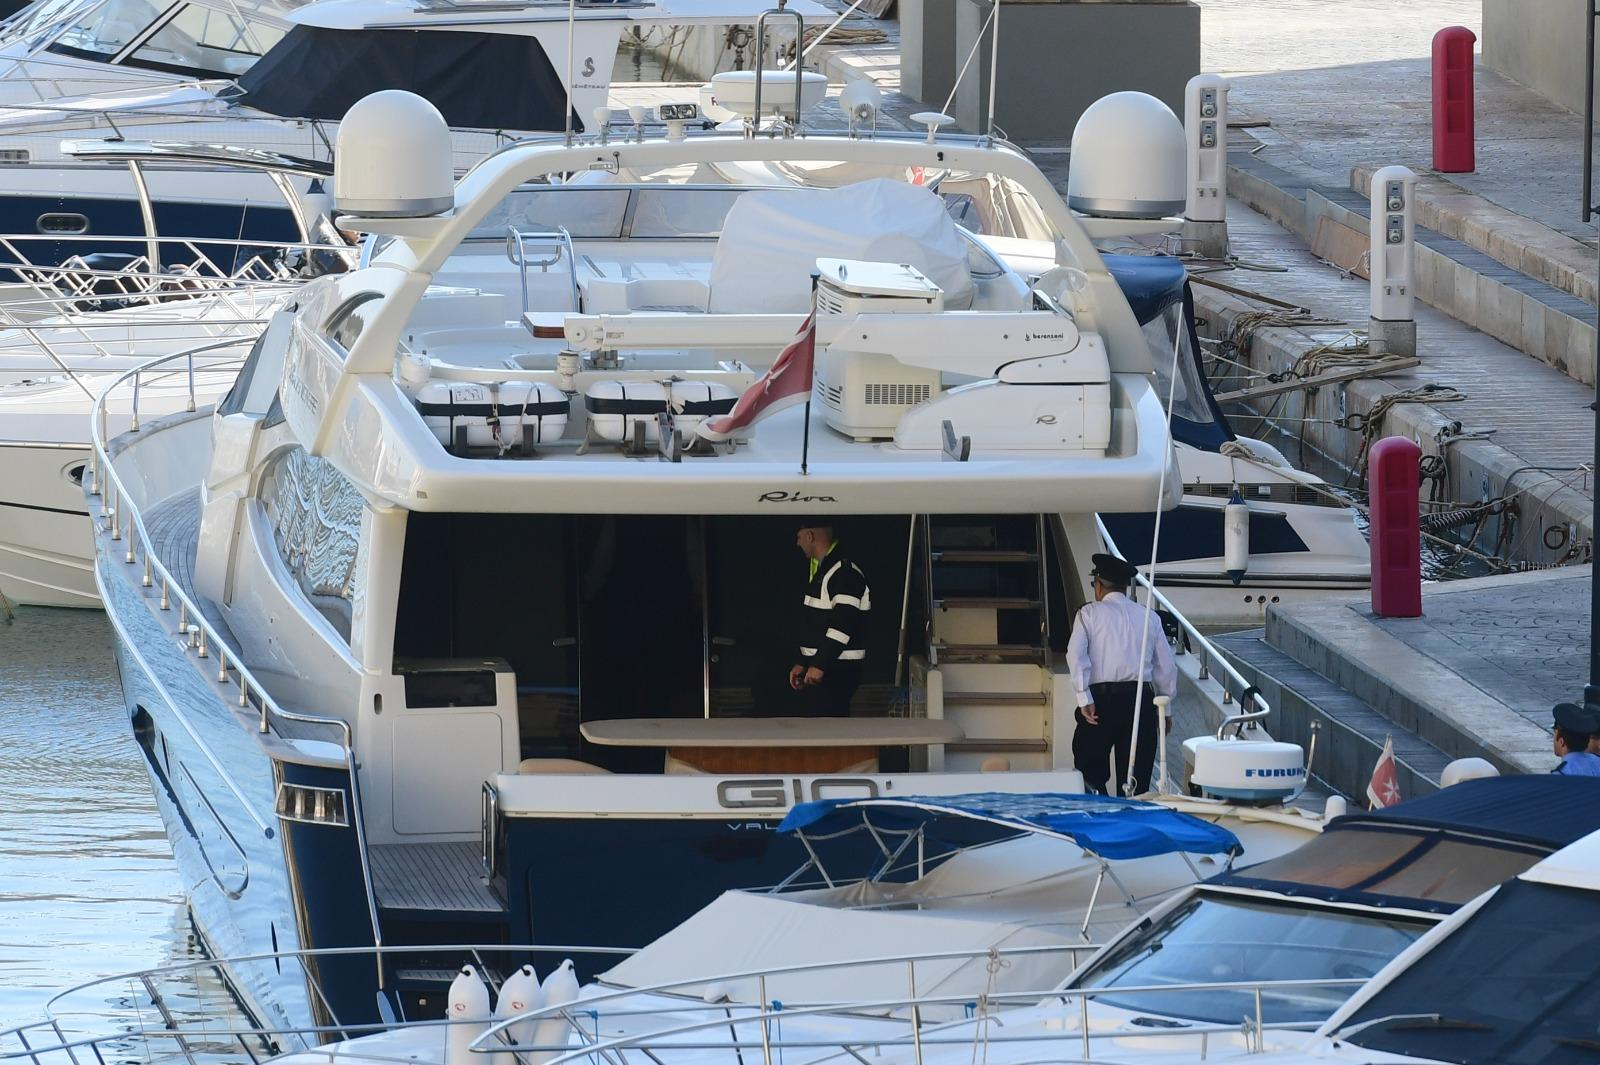 Yorgen Fenech's luxury yacht at Portomaso after it was intercepted by the AFM.